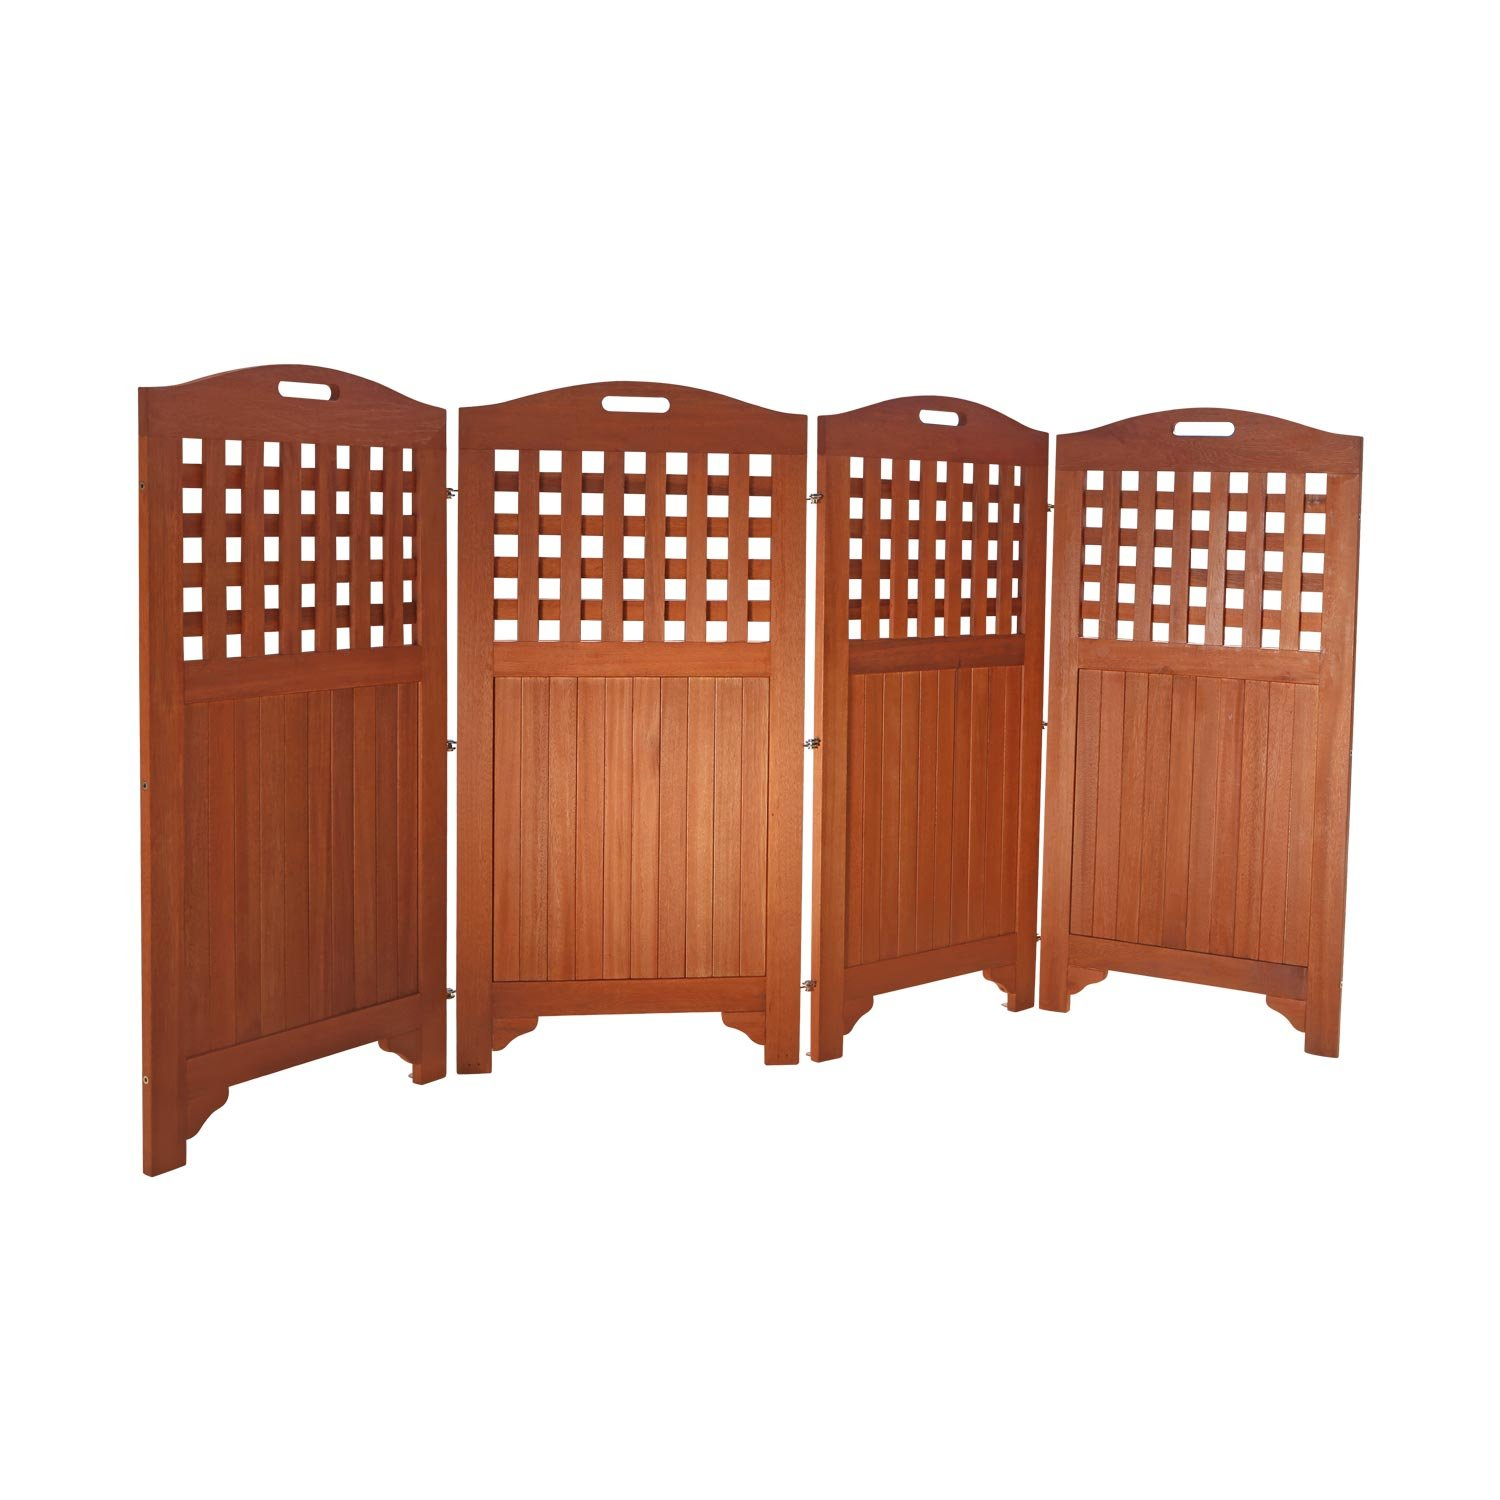 Amazon.com : Vifah V163 Acacia Hardwood Privacy Screen : Outdoor Decorative  Fences : Garden U0026 Outdoor